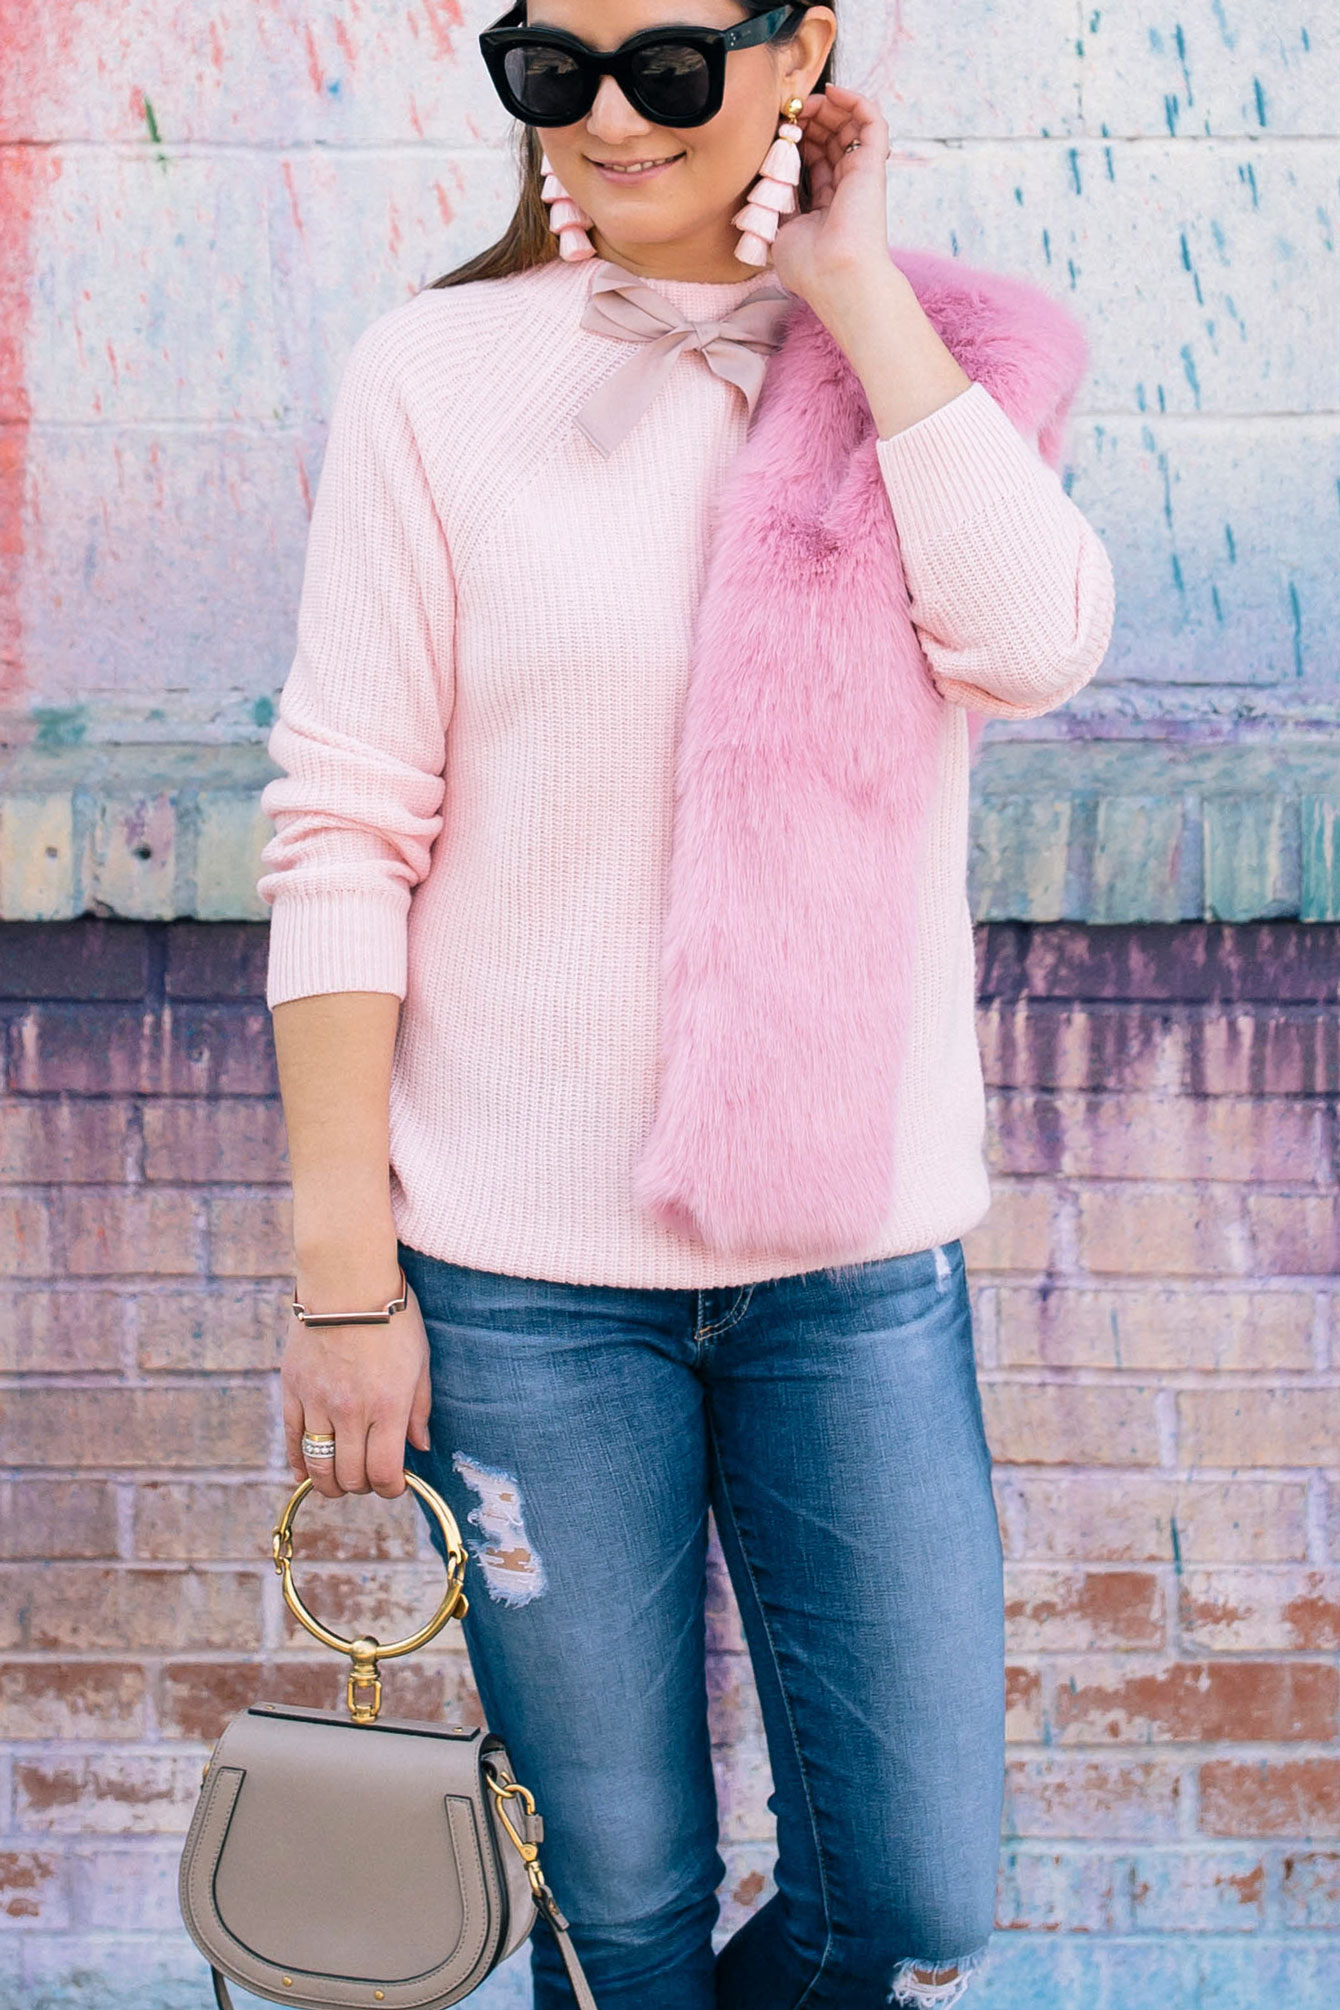 J. Crew Pink Sweater Bow Detail